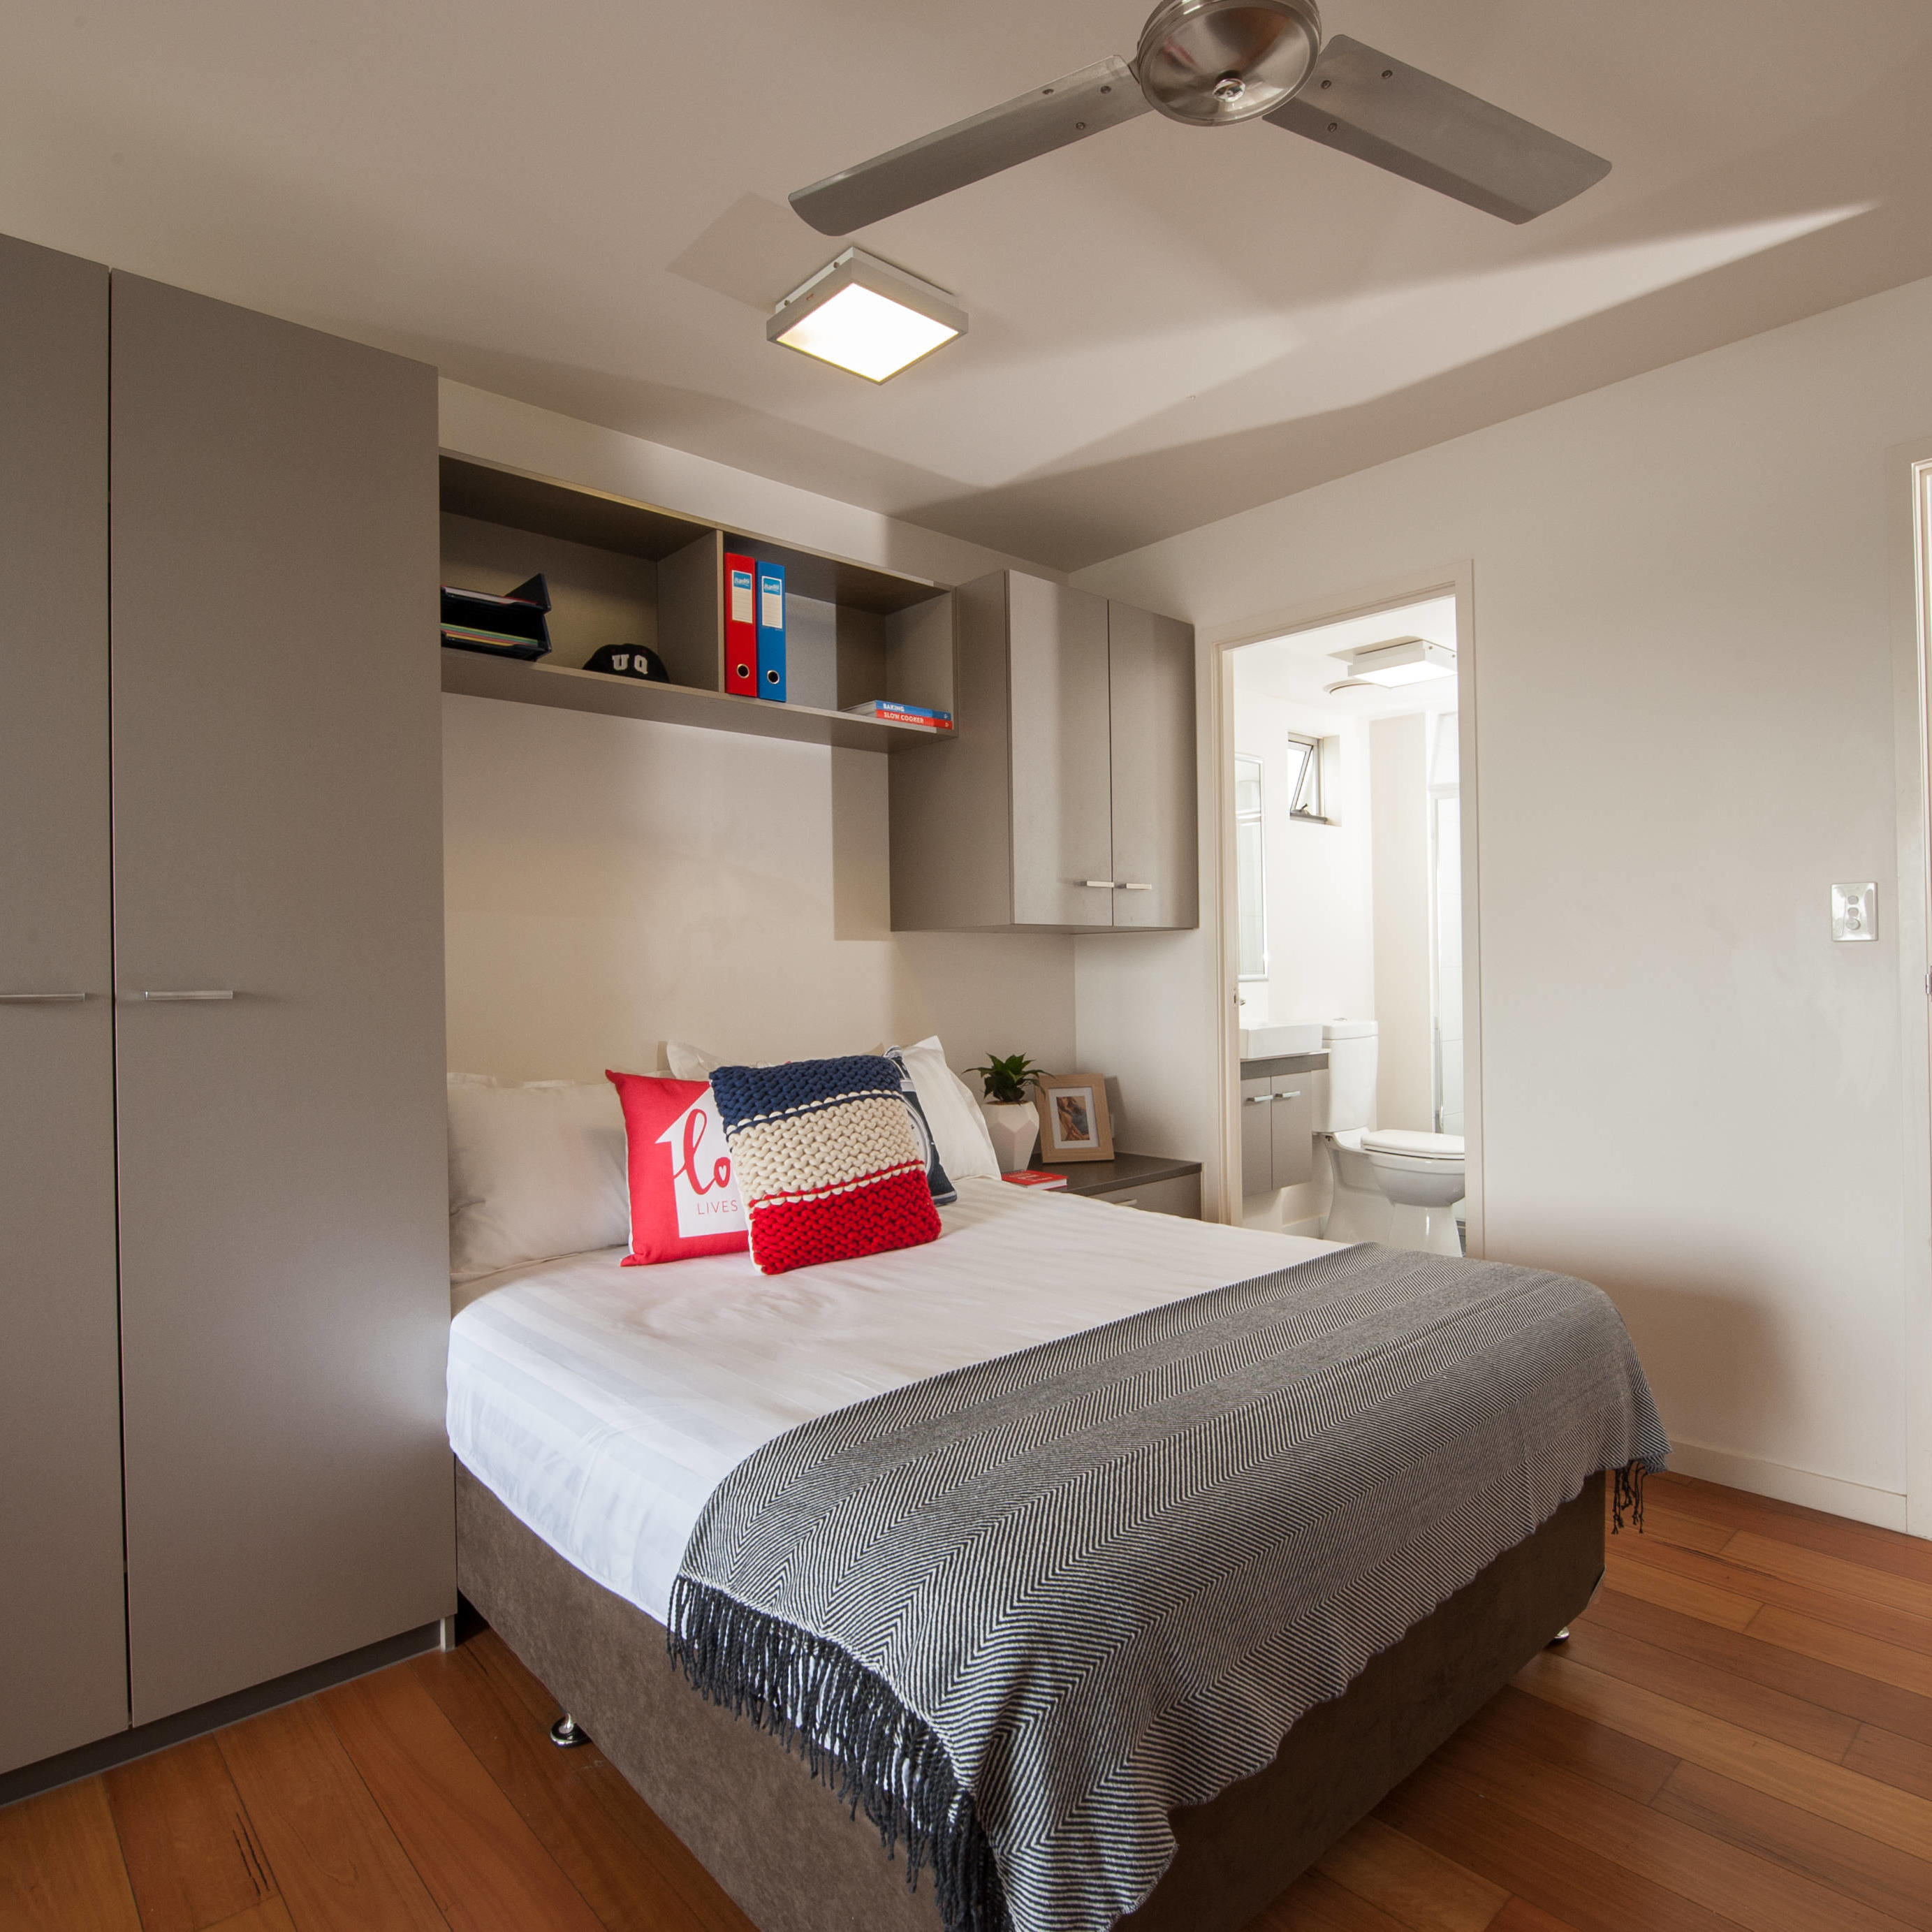 St Lucia Student Accommodation Brisbane | UniLodge UQ